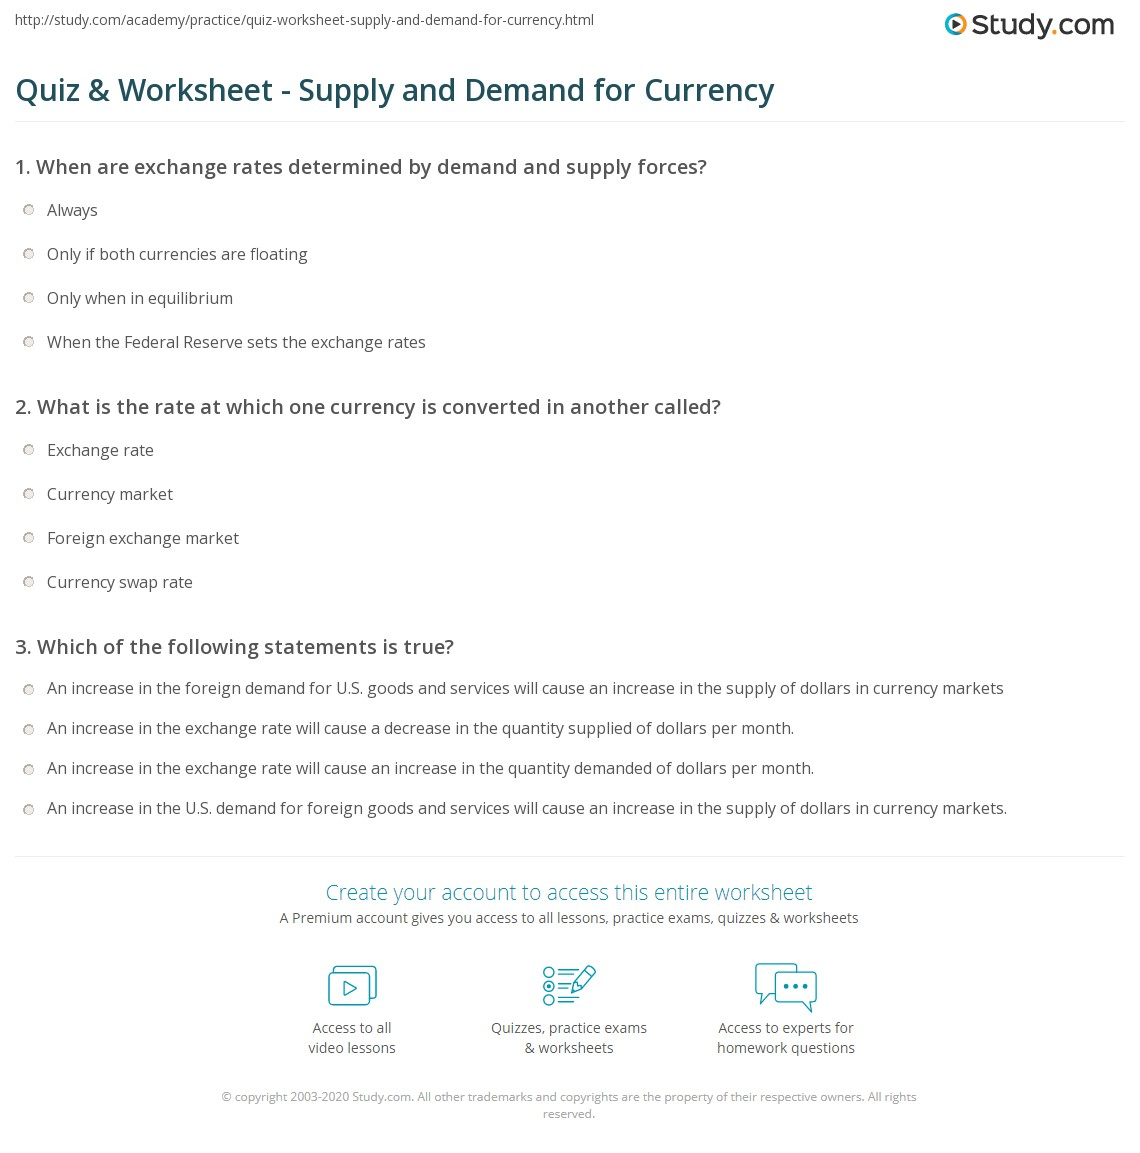 Worksheets Supply And Demand Worksheets quiz worksheet supply and demand for currency study com print foreign exchange worksheet